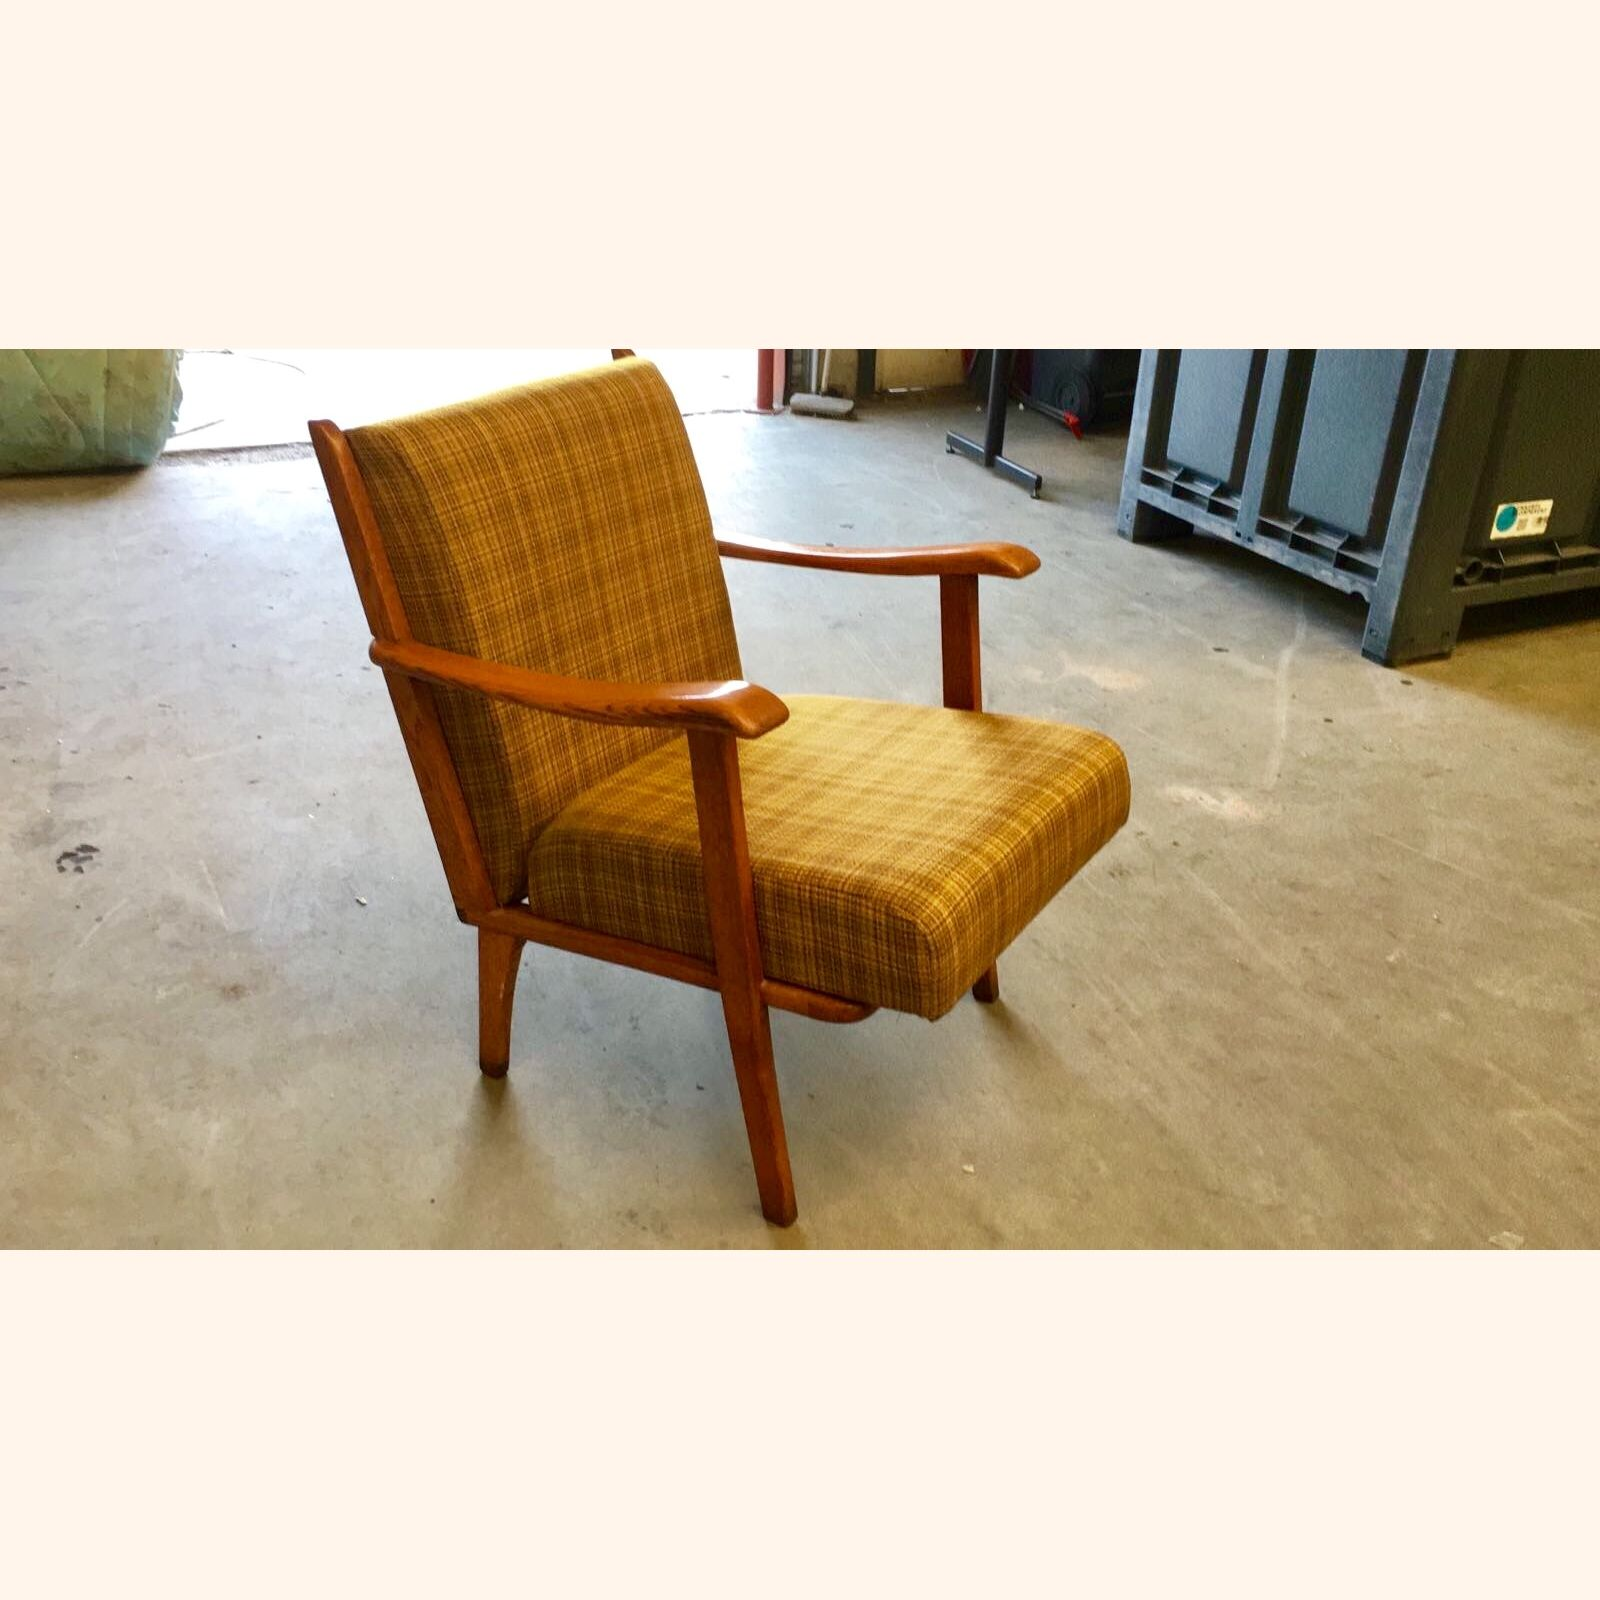 Sold Vintage Art Deco Chair